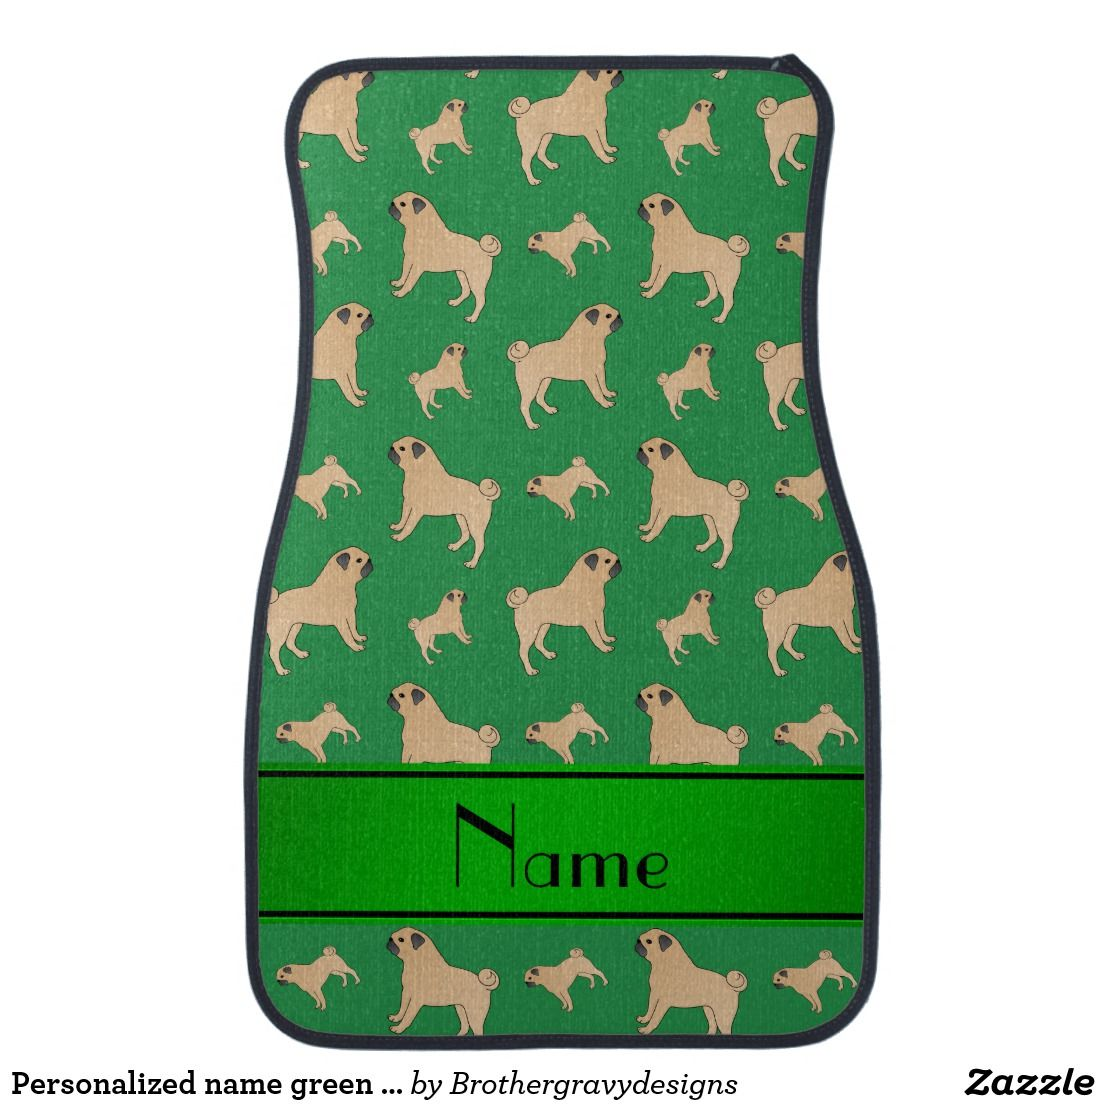 Personalized name green Pug dogs Car Mat